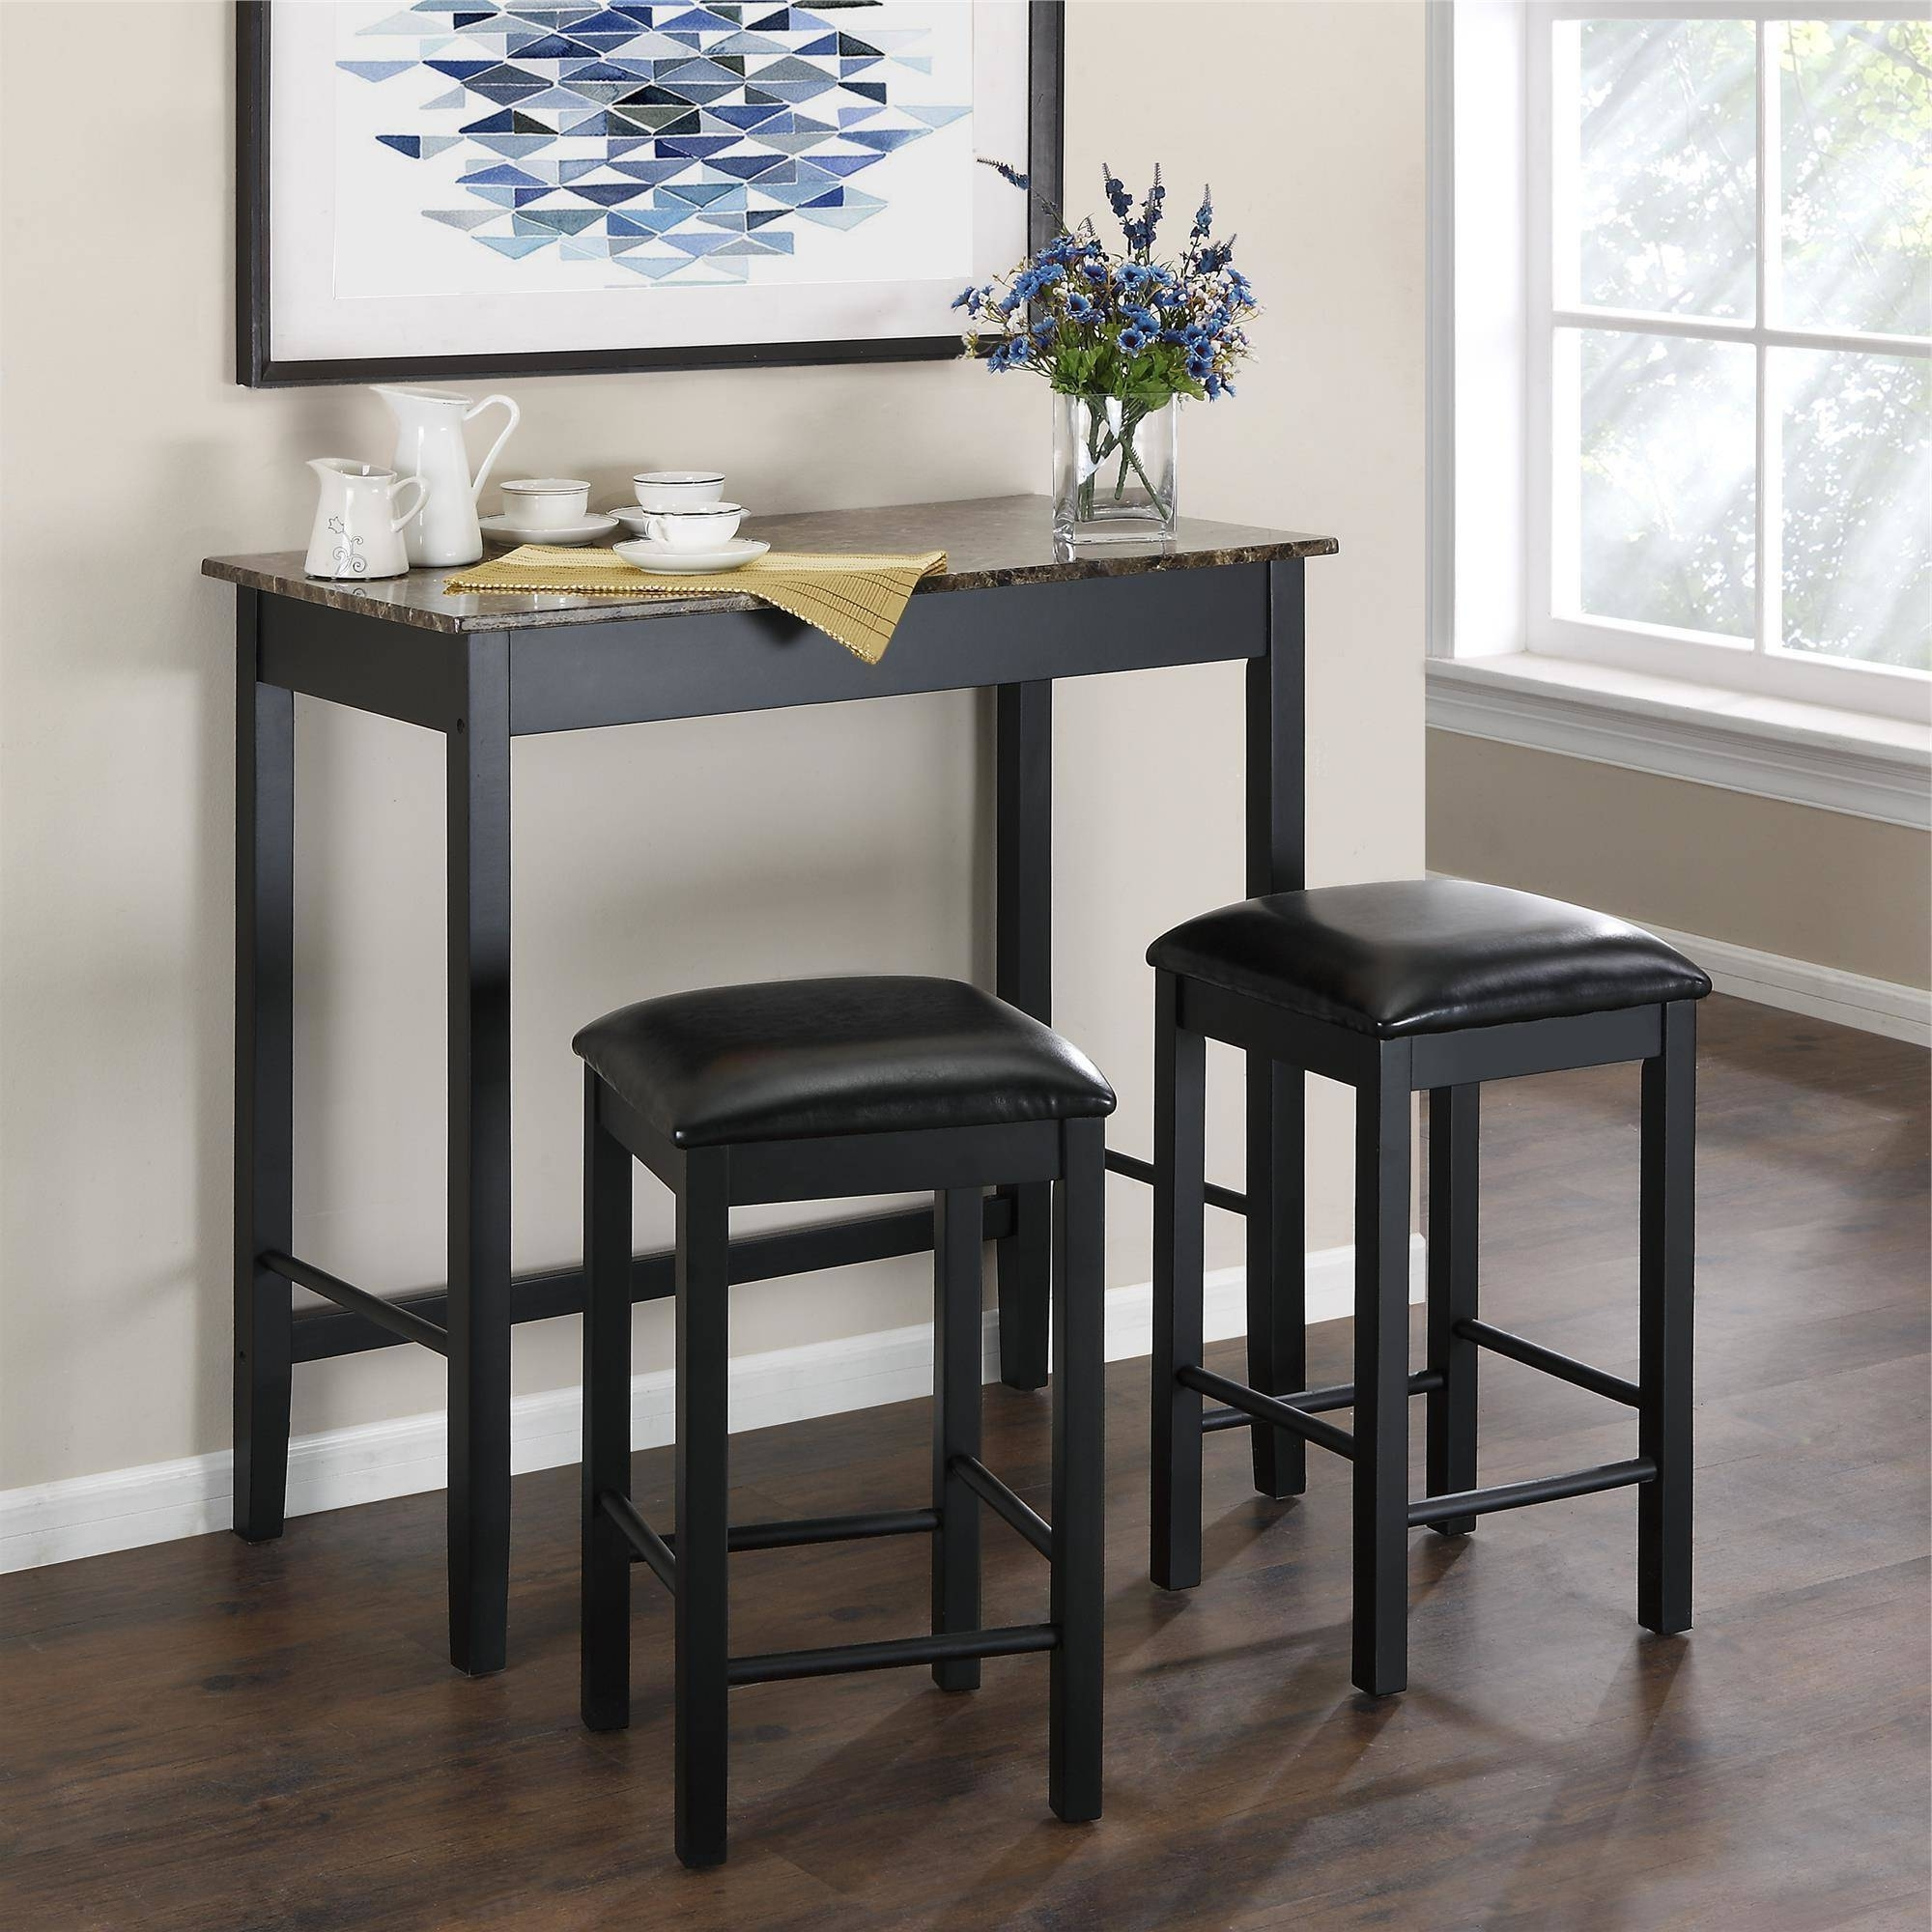 Dorel Living Devyn 3 Piece Faux Marble Pub Dining Set, Black In Recent Black Wood Dining Tables Sets (View 10 of 25)